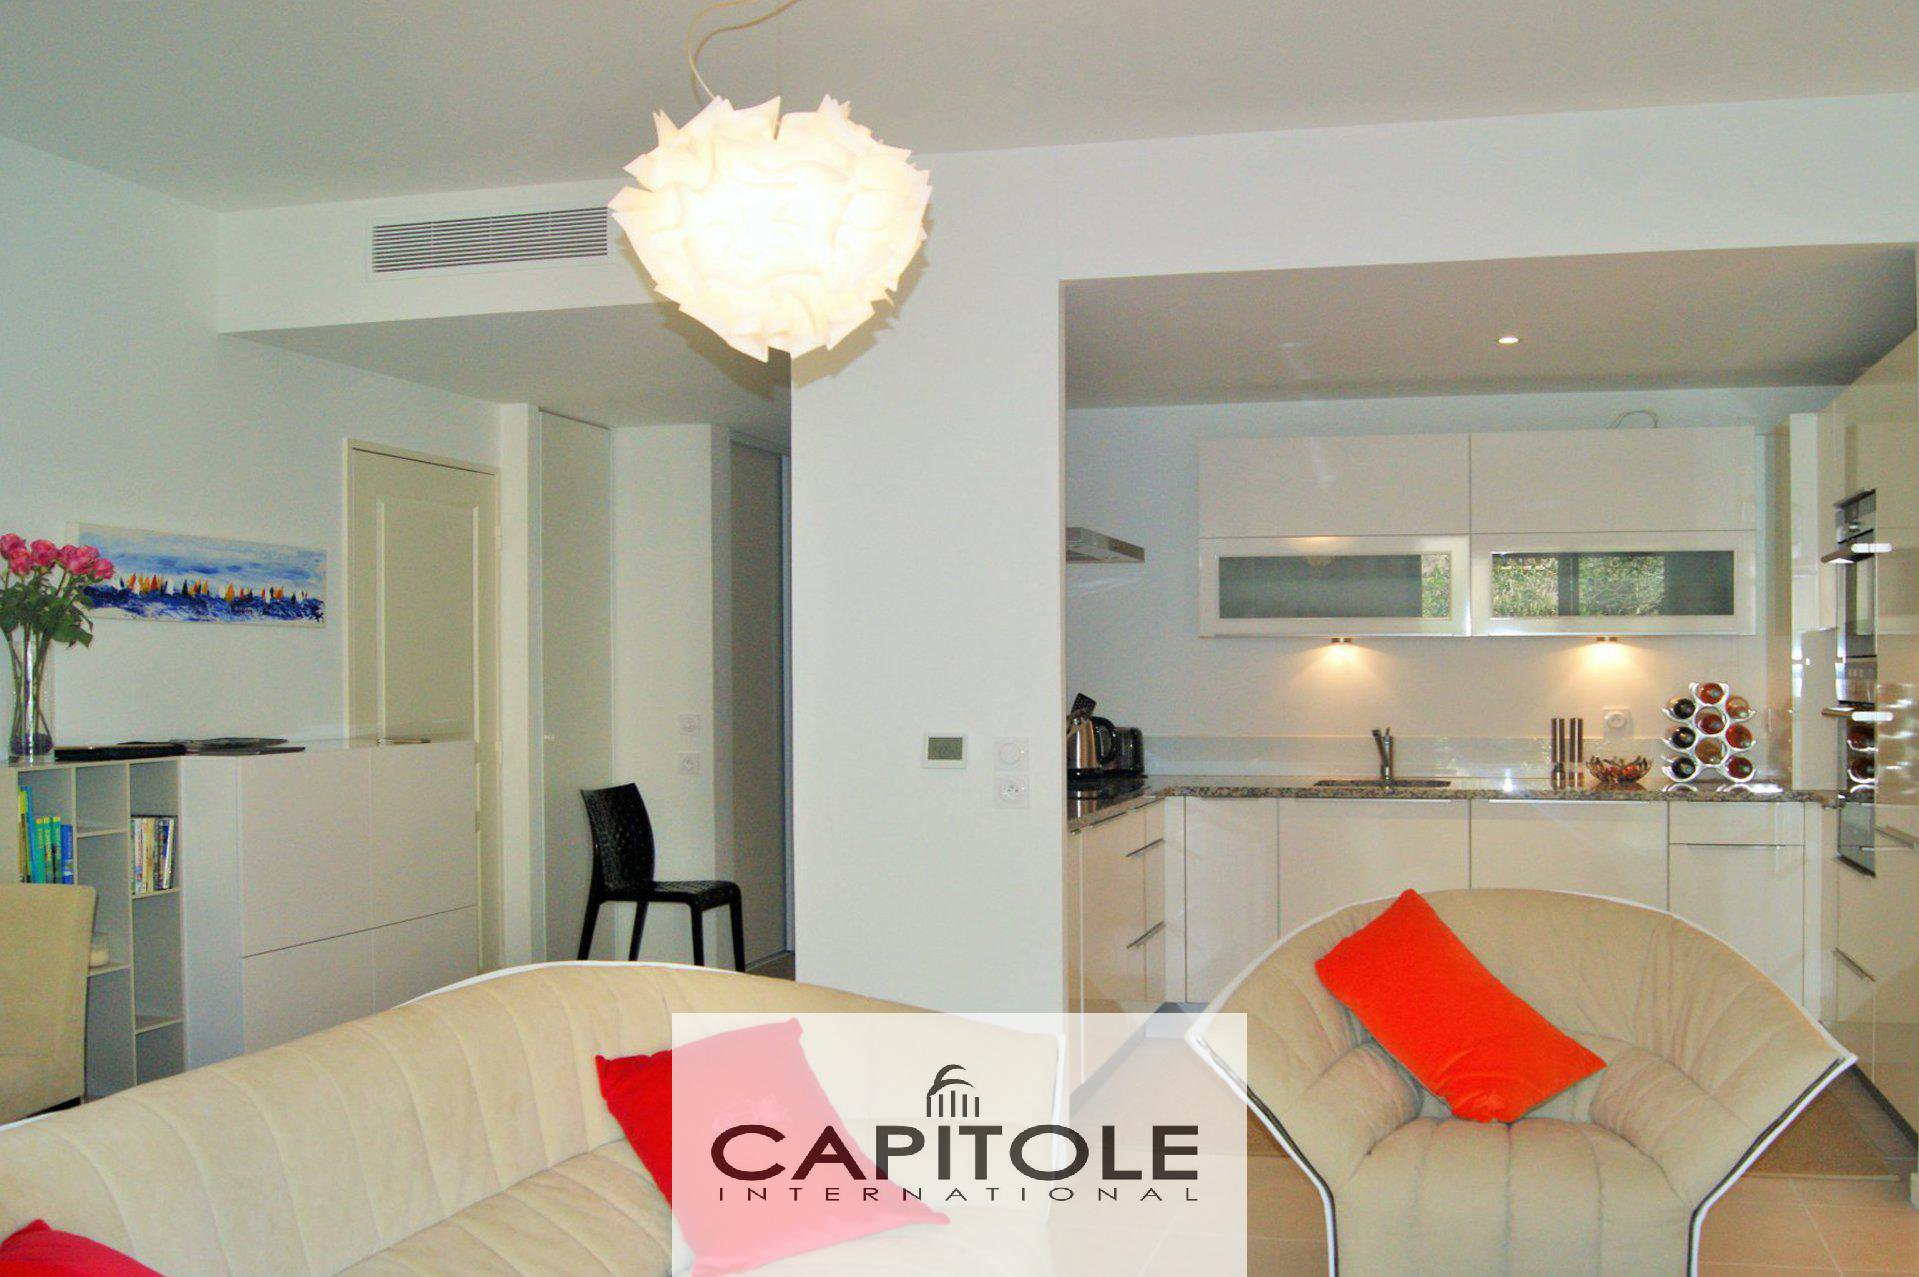 For sale,  Antibes Albert 1er, luxurious 2 bedroom apartment, large terrace